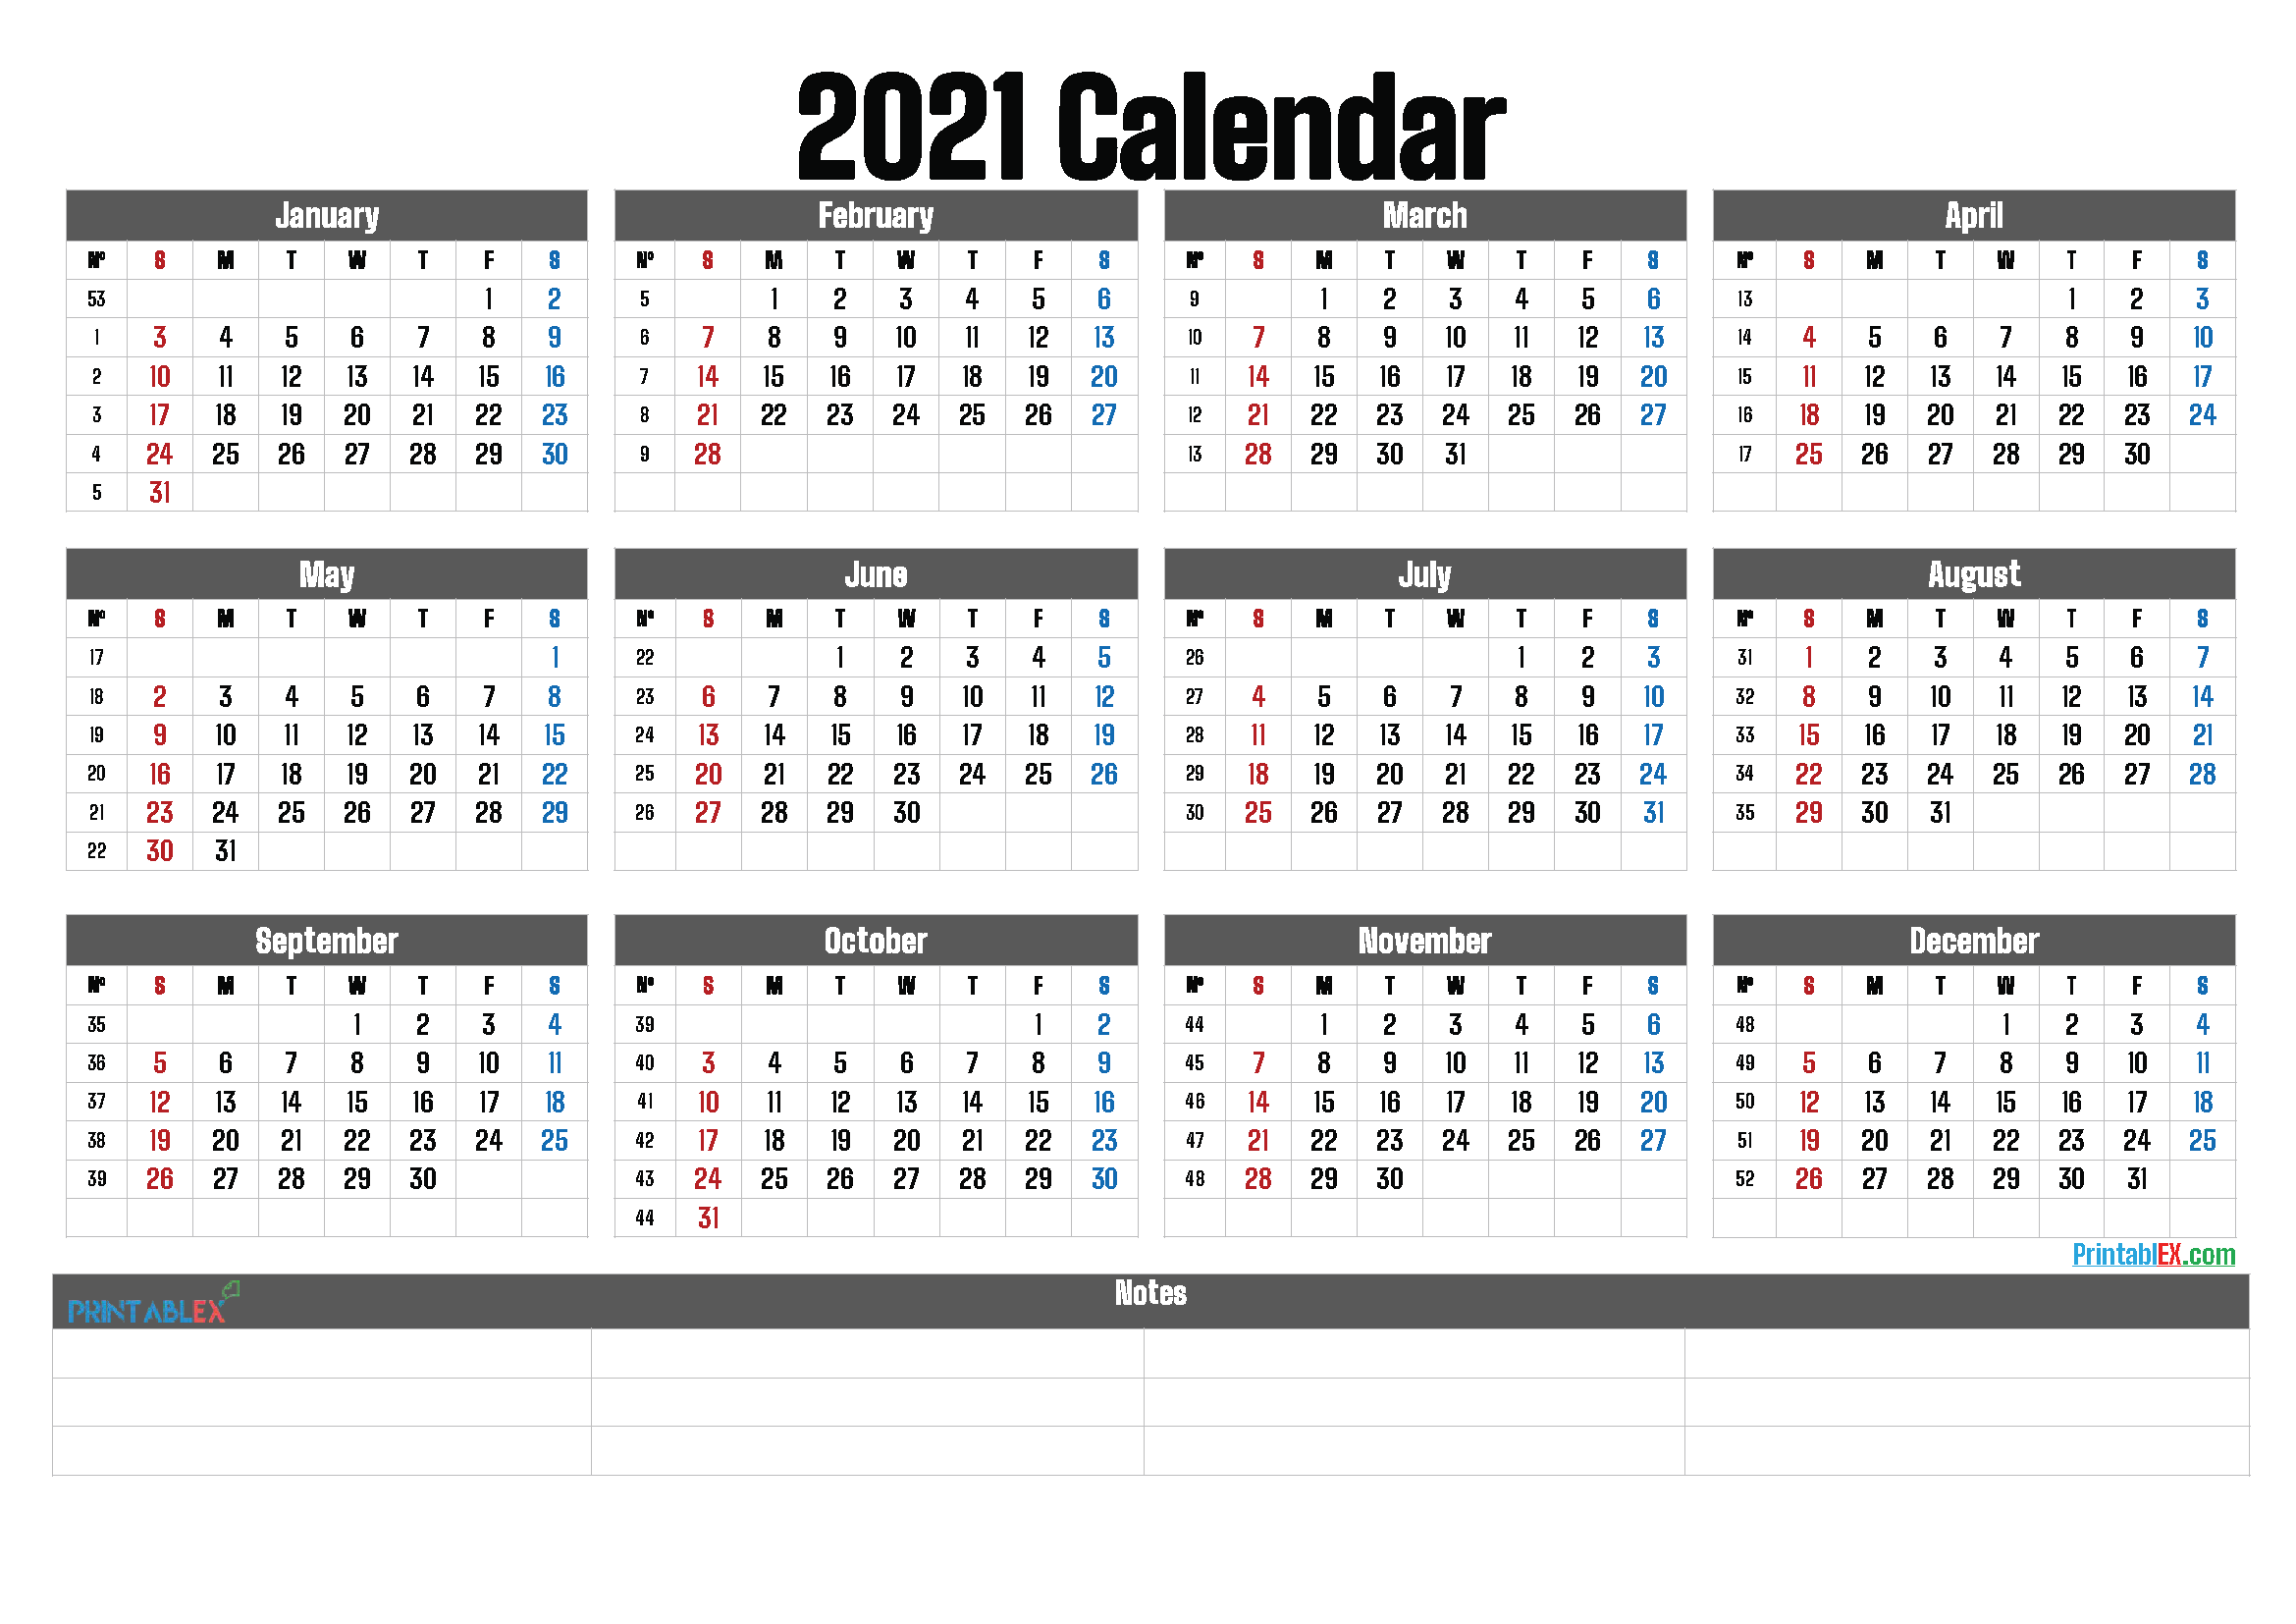 2021 Printable Yearly Calendar with Week Numbers (Font: leand)